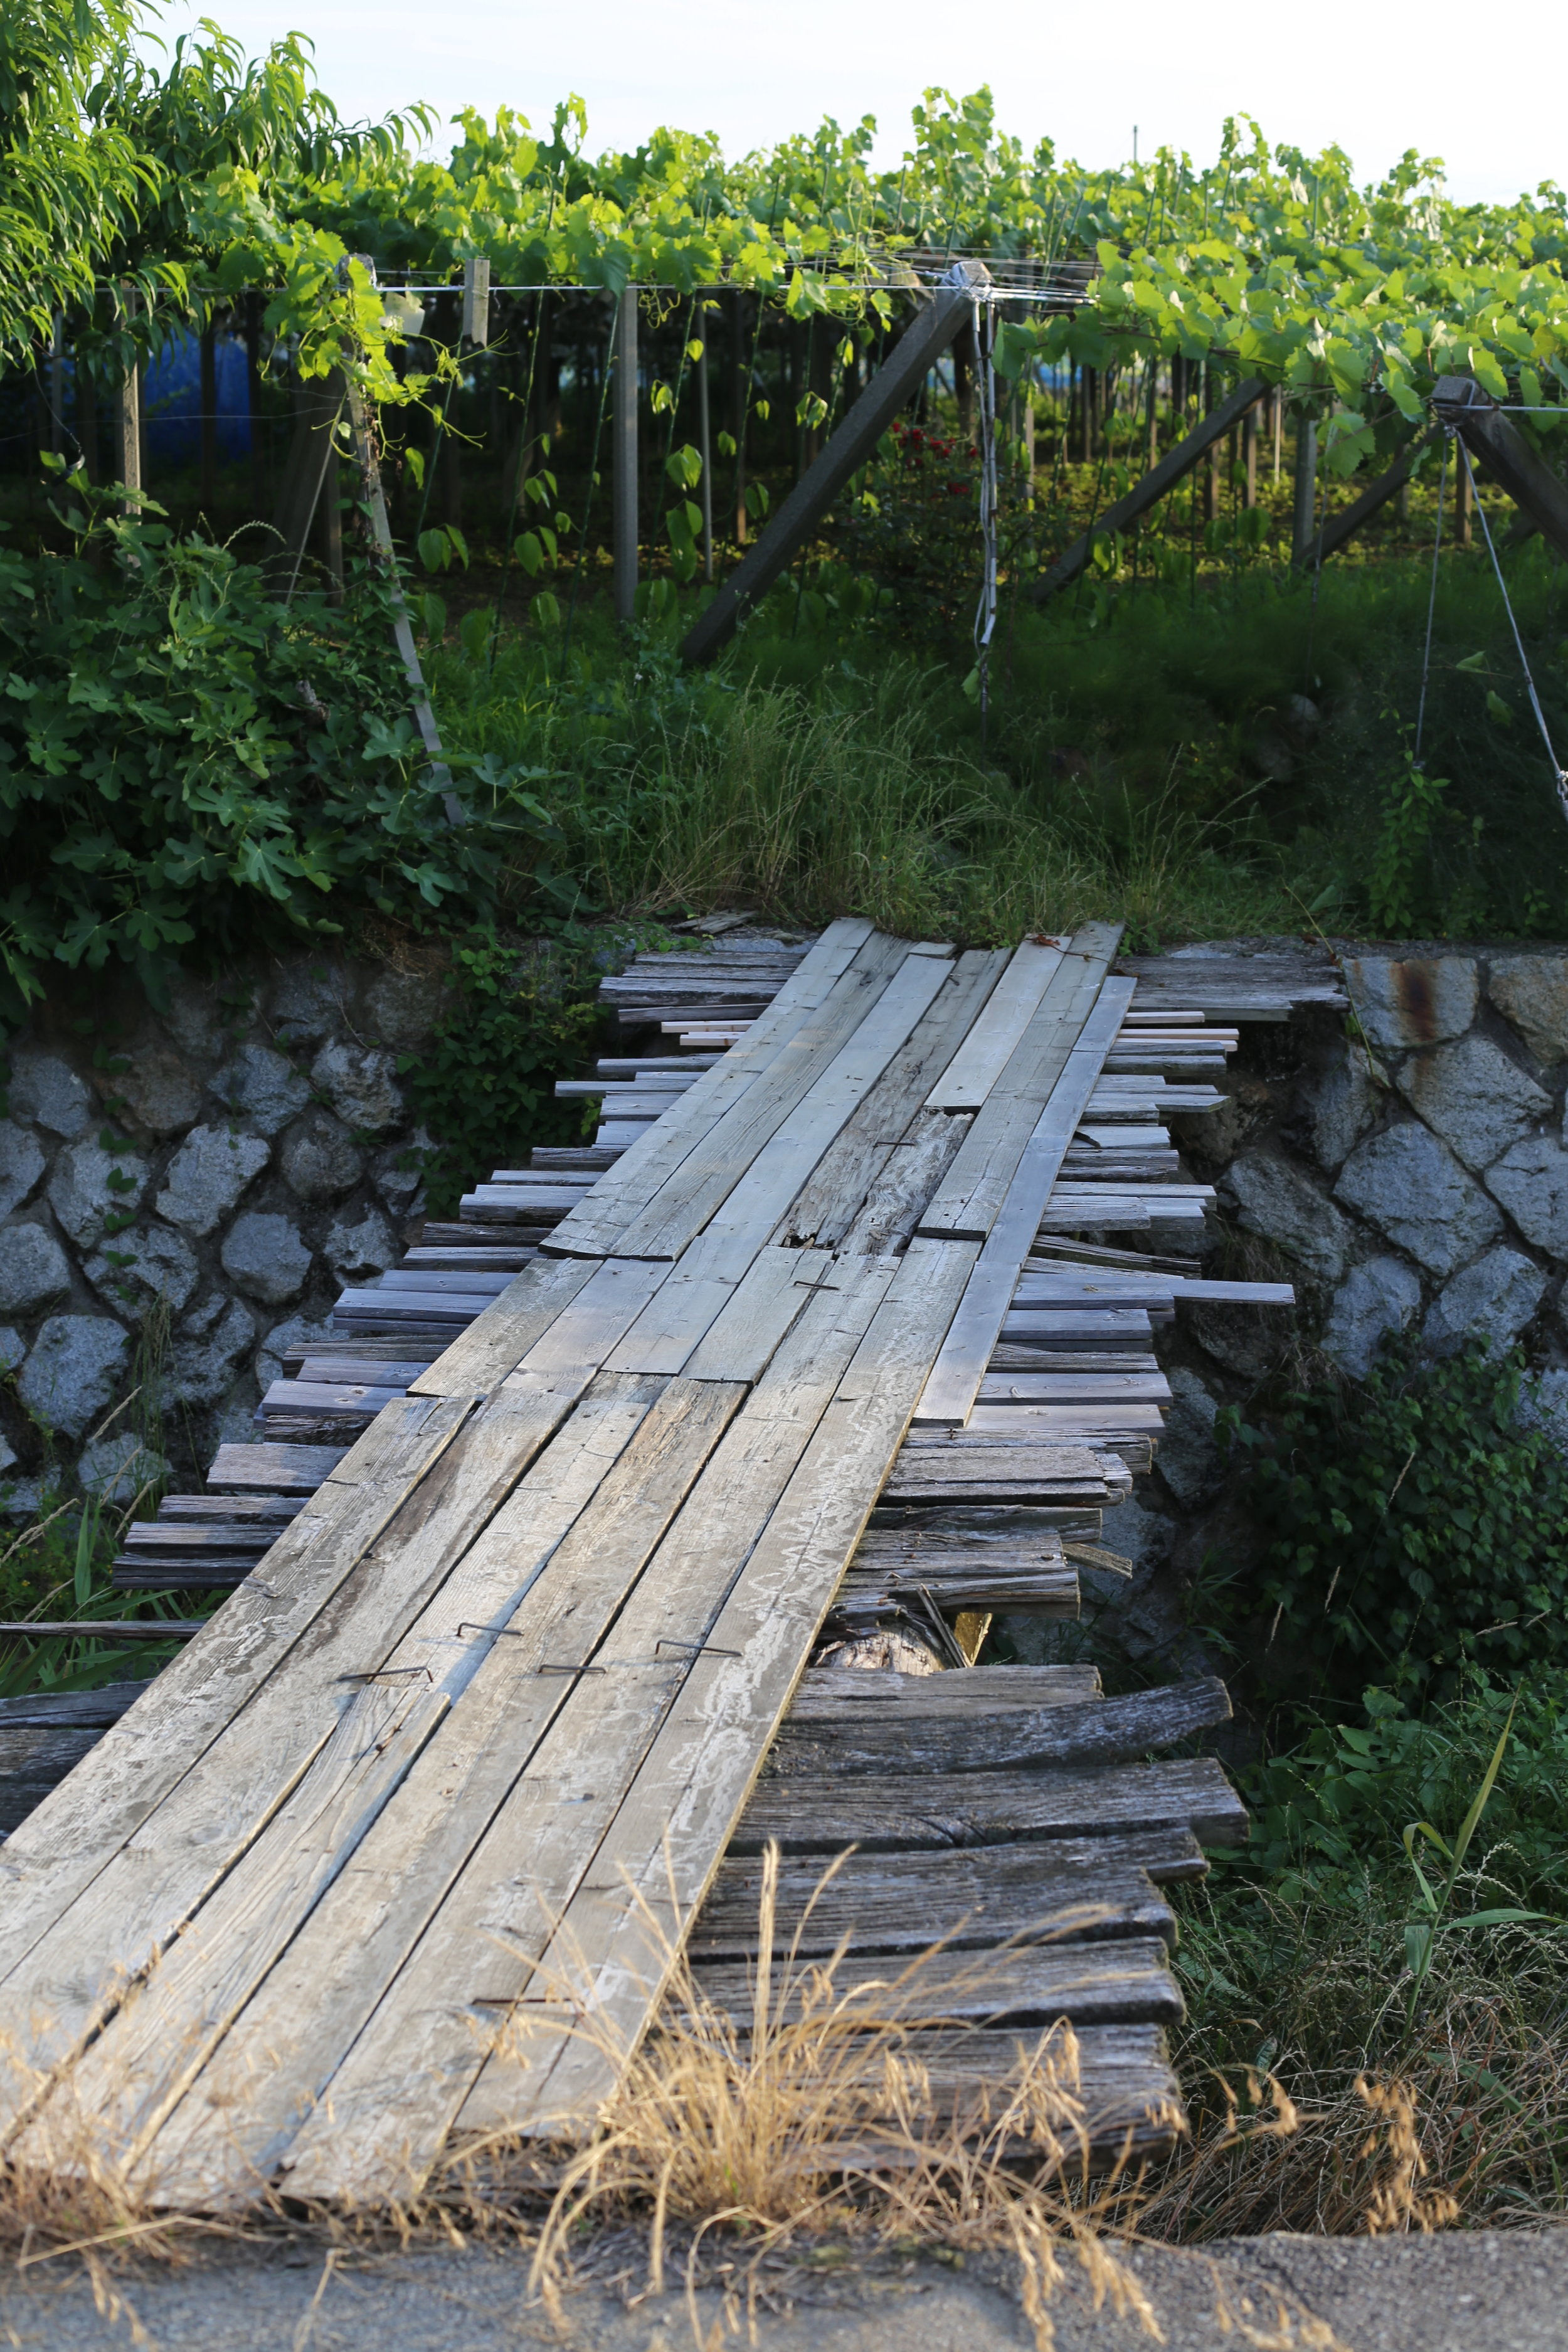 Koshu Valley_Japanese Wine Region_Pergola vineyard_Wooden bridge.JPG